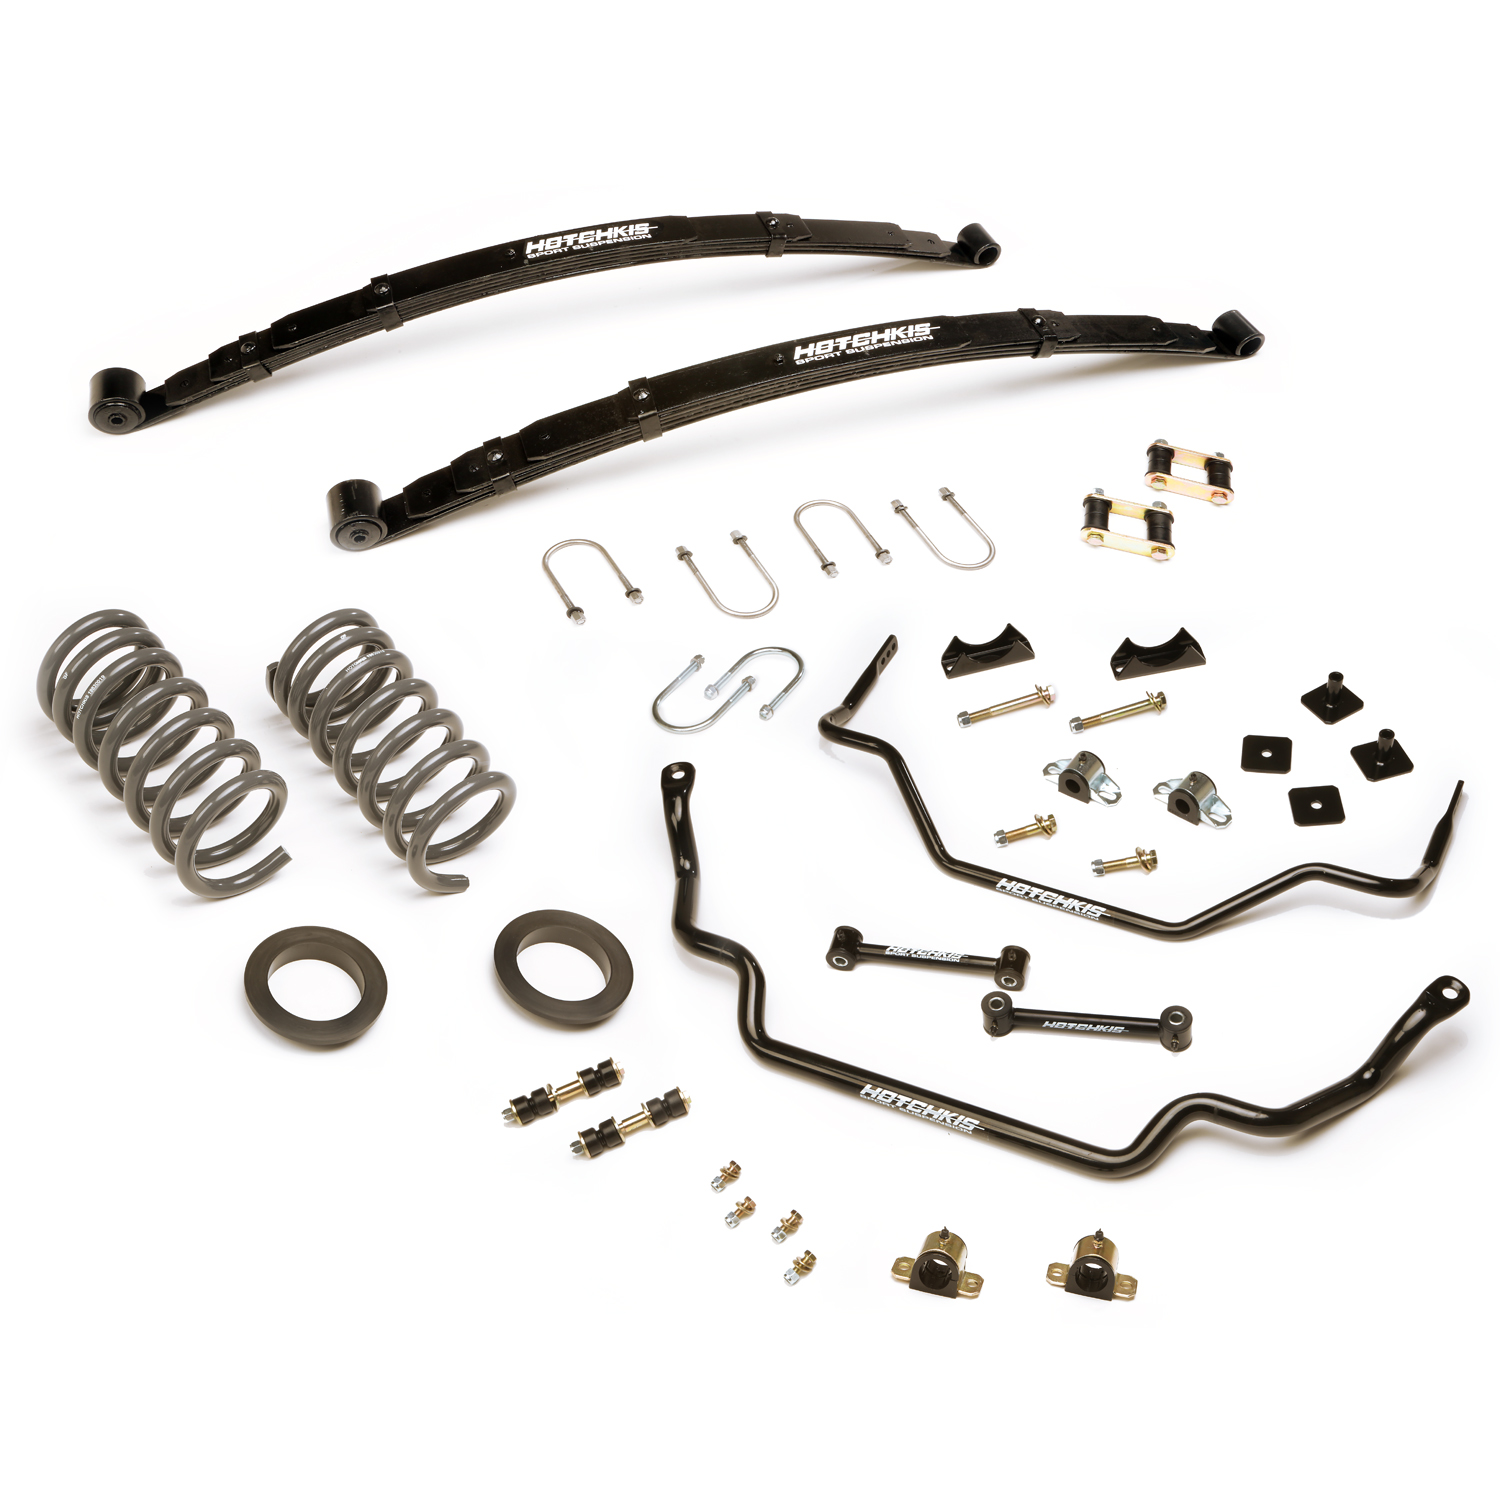 1967-1970 Ford Mustang TVS Suspension System, Coupe, Fastback, Convertible SB